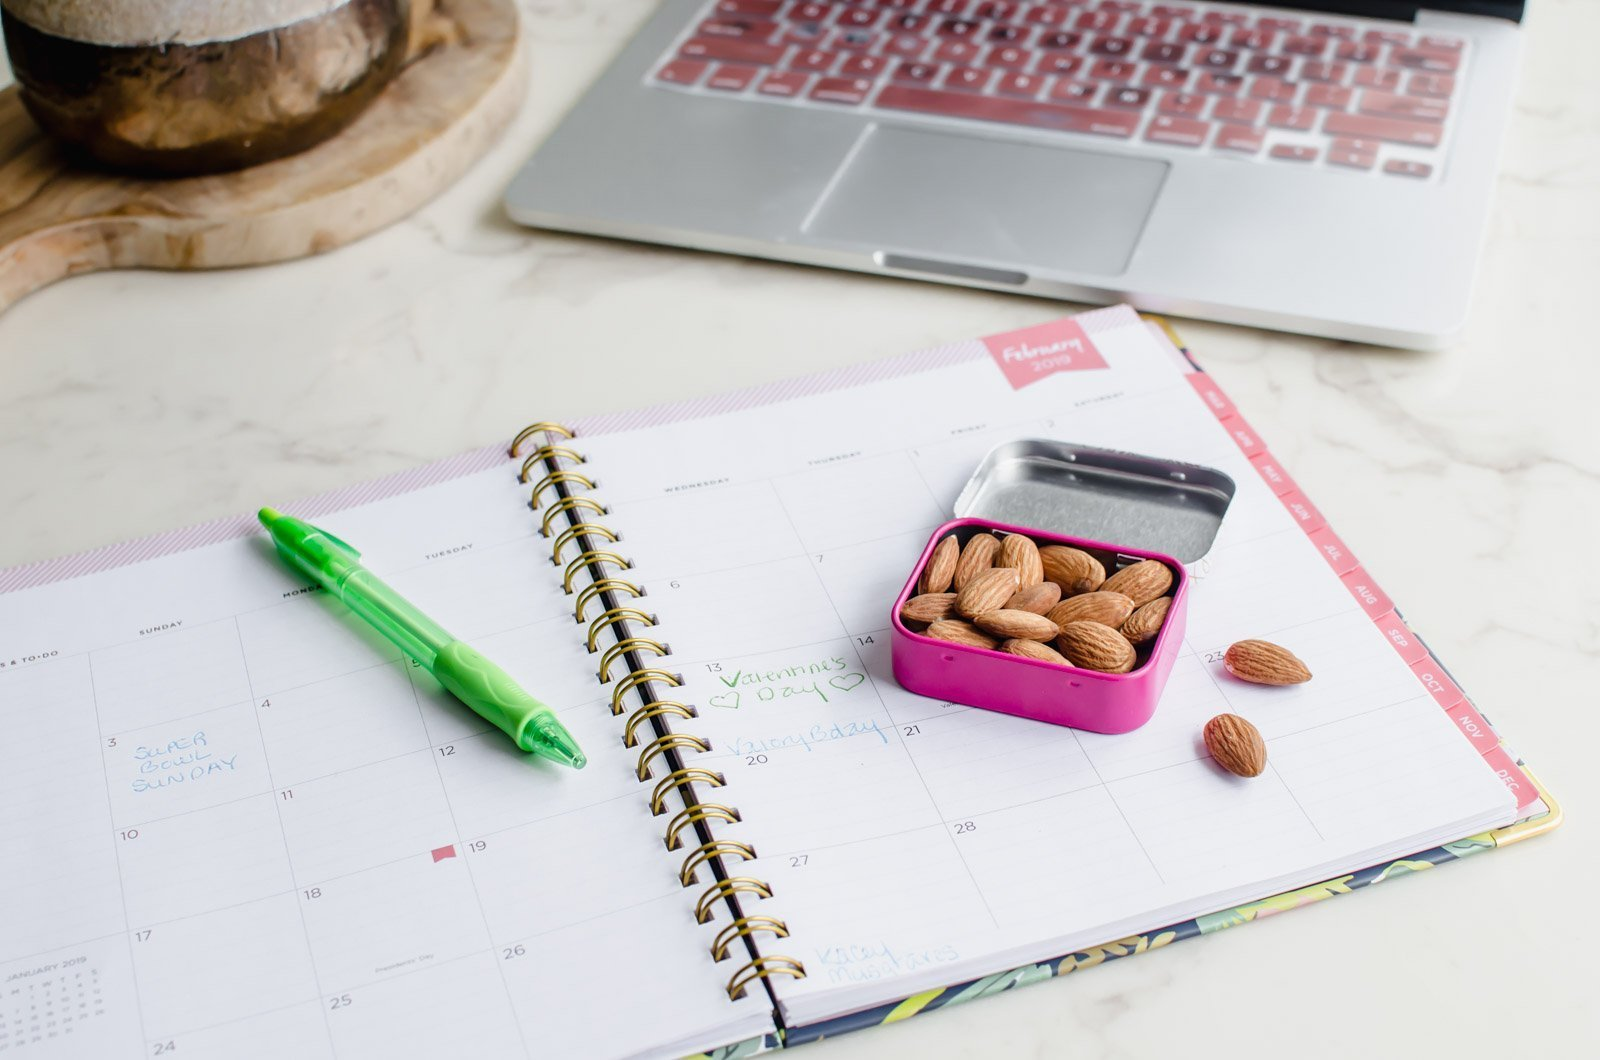 A planner set pen with a green pin and a snack tin with almonds.